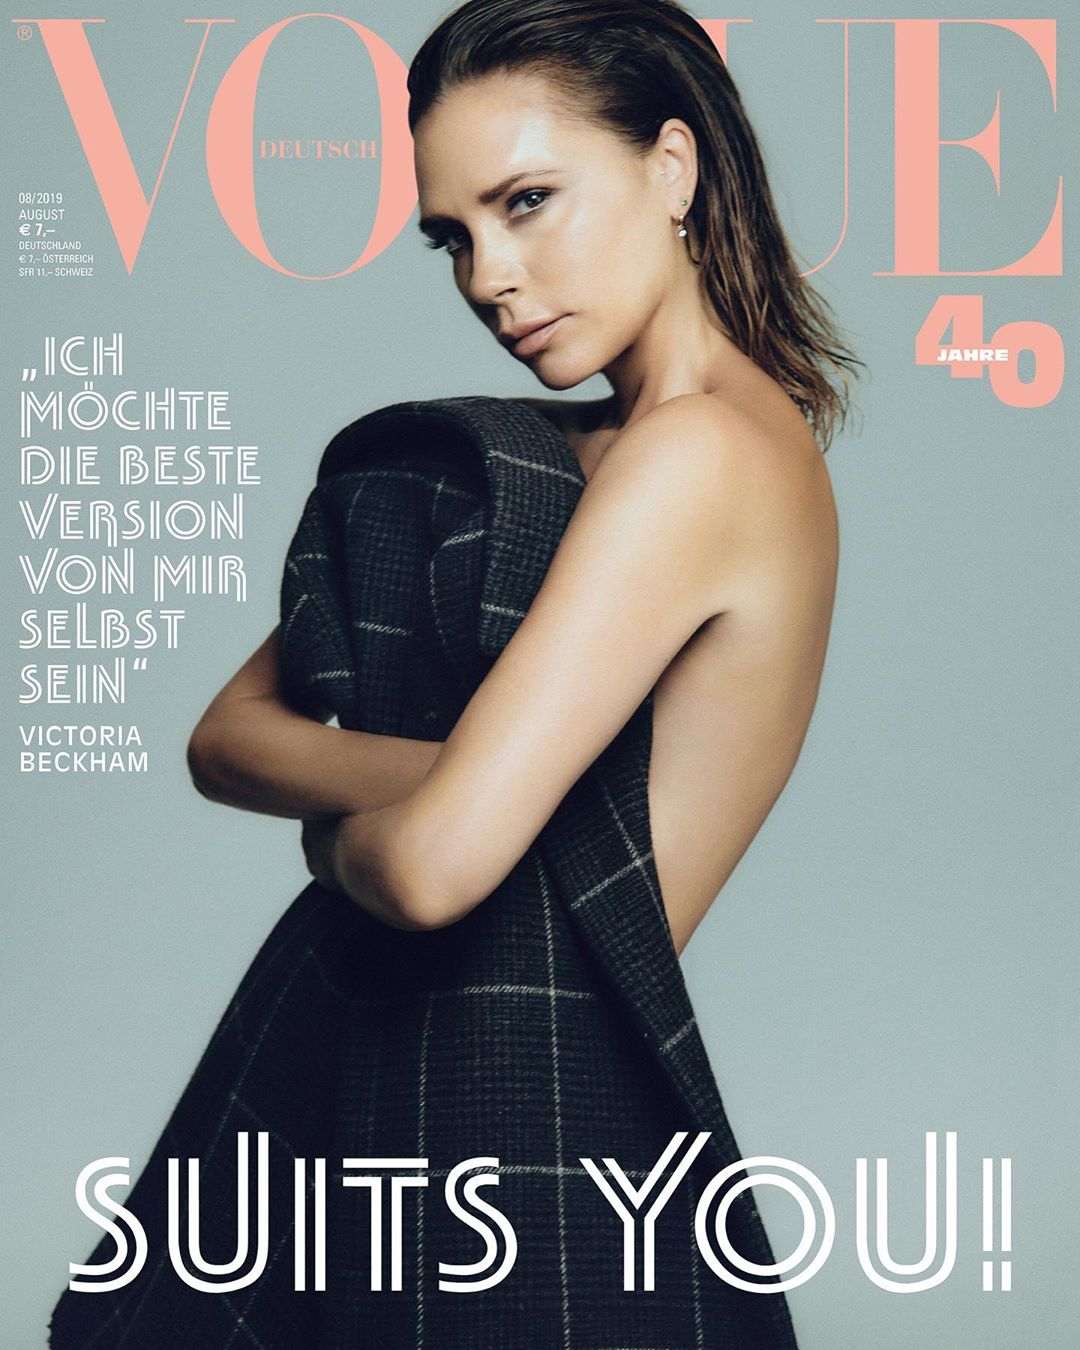 Victoria Beckham Instagram: Thank u for featuring me on the cover of